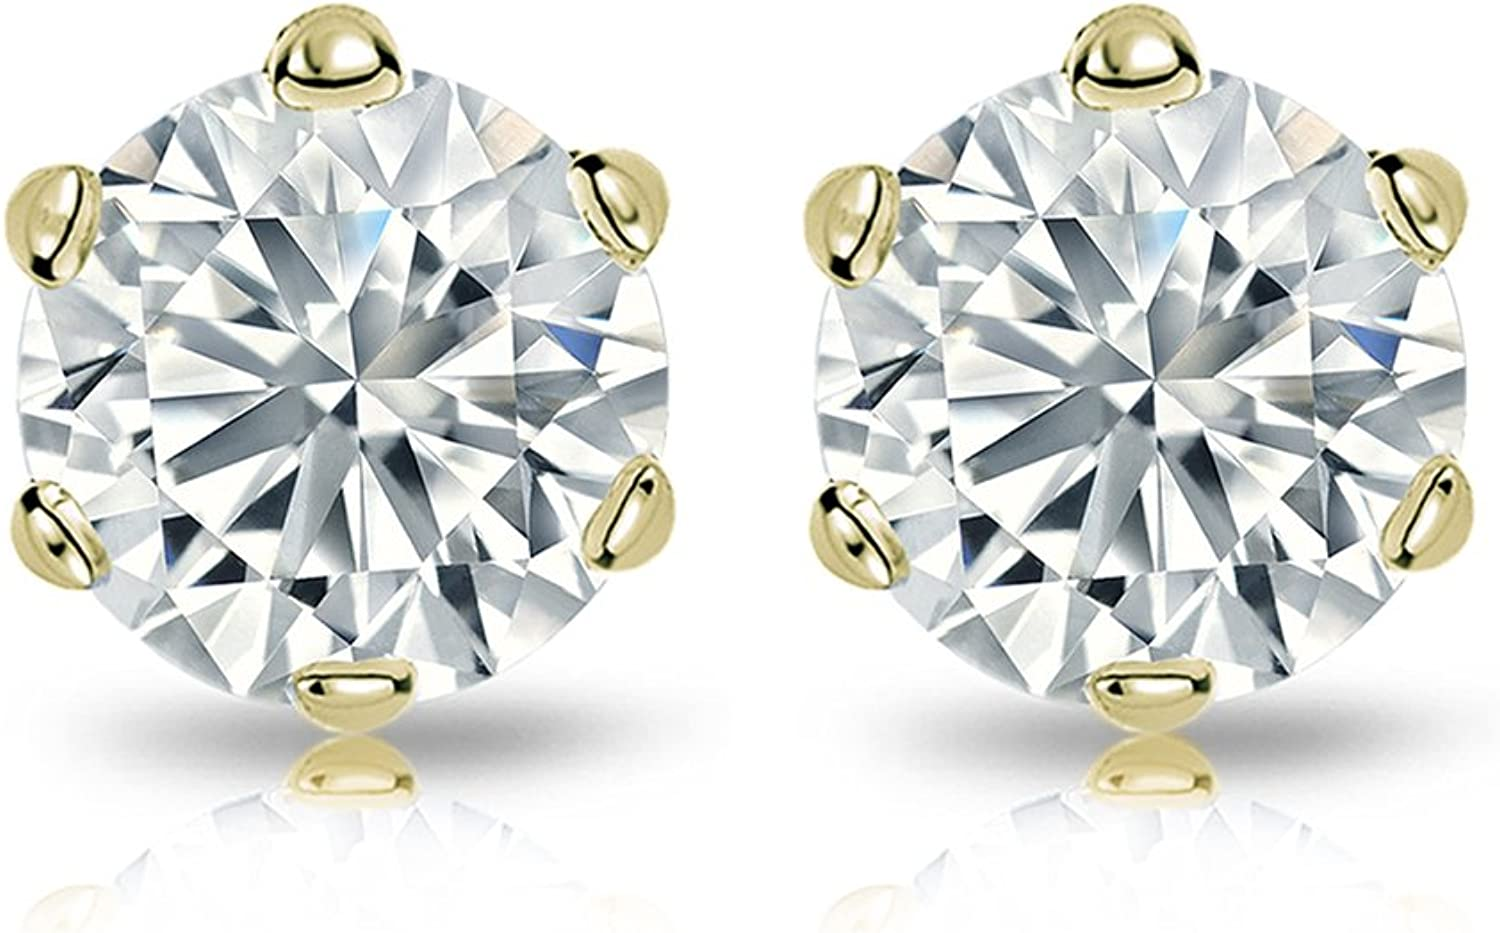 1//4-2cttw,Excellent Quality 14k Gold Mens Round Diamond Simulant CZ Stud Earrings 6-Prong